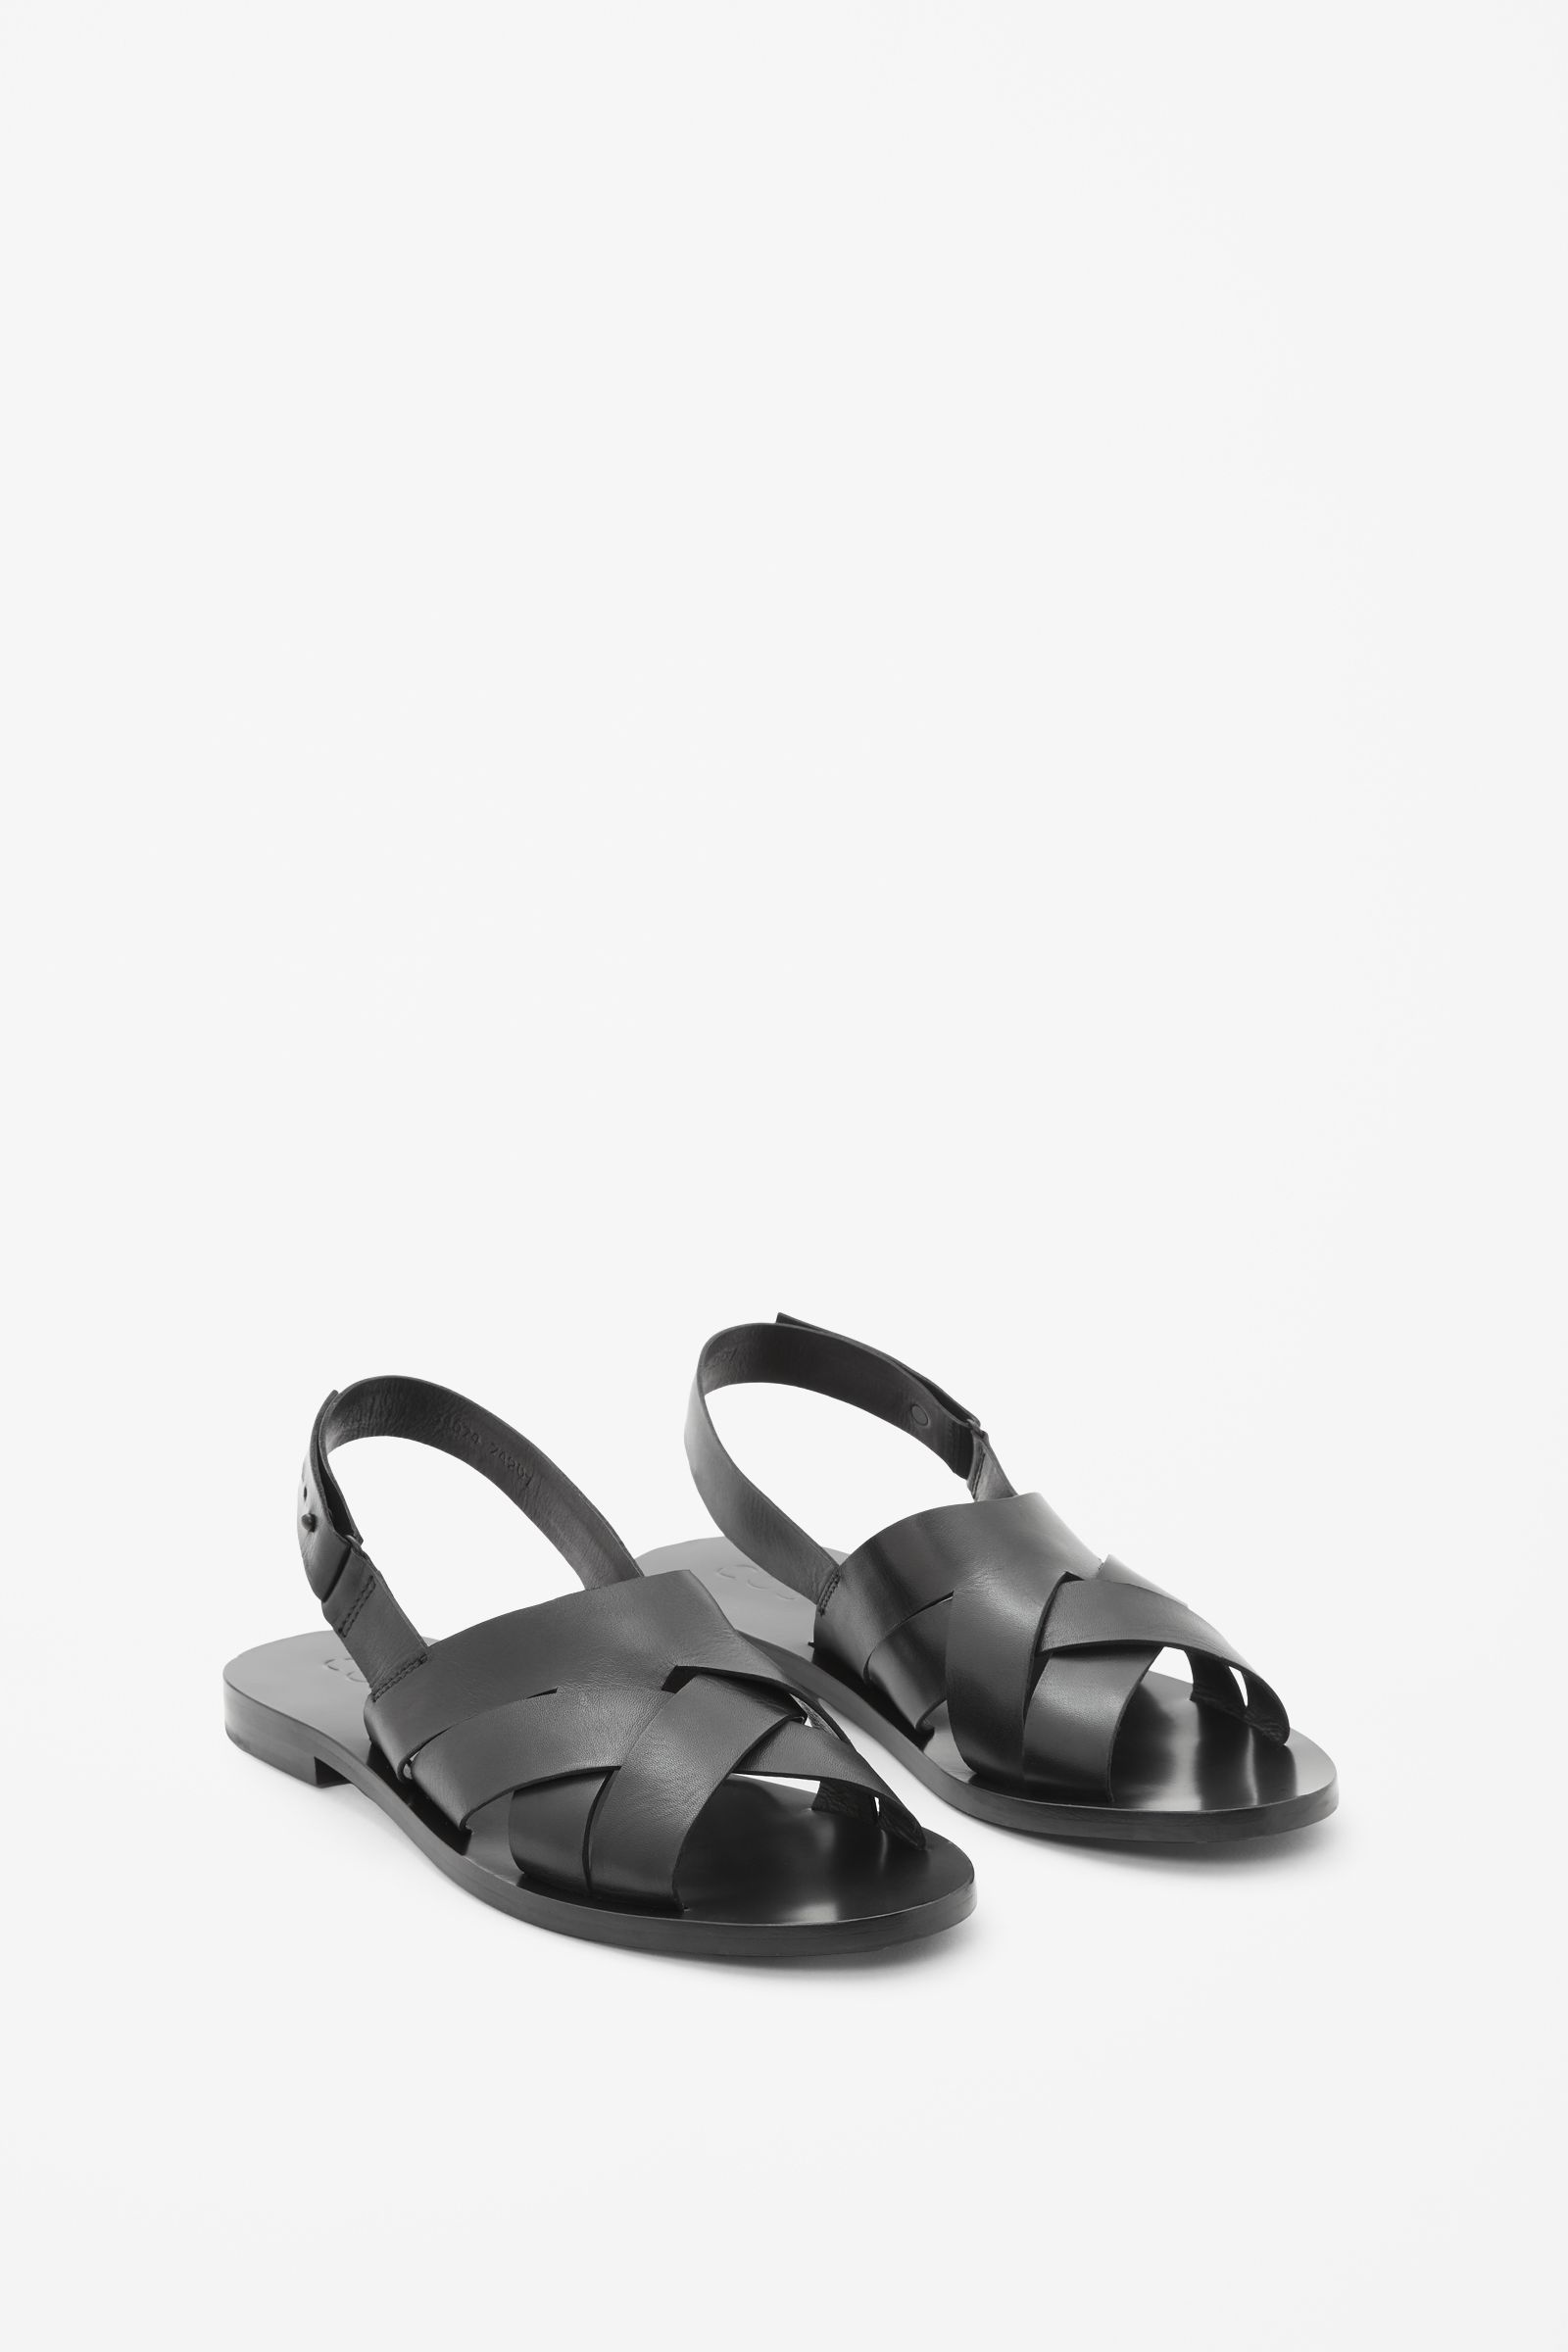 These sandals are made from braided panels of soft, buttery leather. A casual style, they are completed with a stacked wooden heel and a modern metal pin fastening.